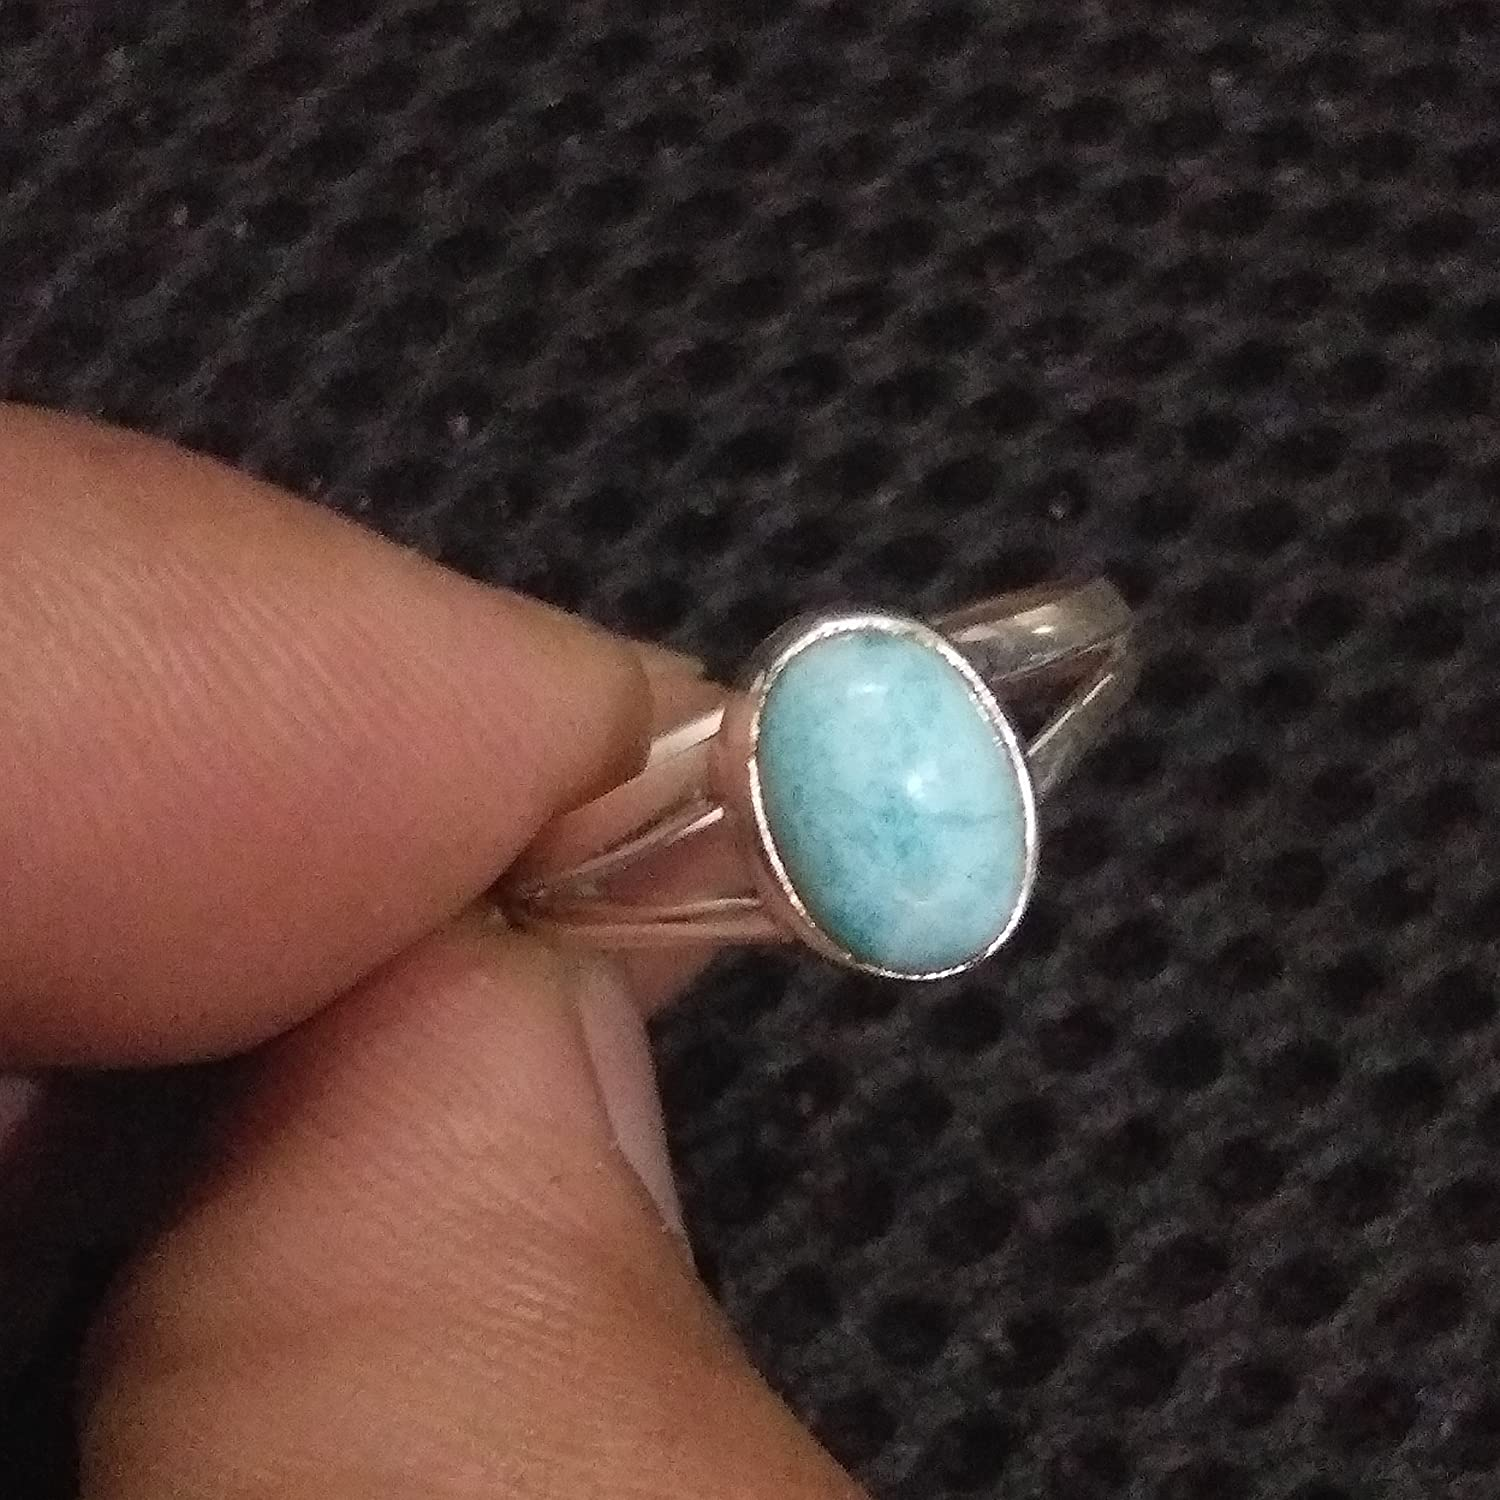 Larimar Ring.Sterling Silver Ring.Dominican Larimar Ring.March Birthstone.Larimar Silver Ring.Promise Ring.Healing Jewelry.Delicate Ring.Dainty Ring.Charm Ring.US Ring Size 3-15 (Standard)